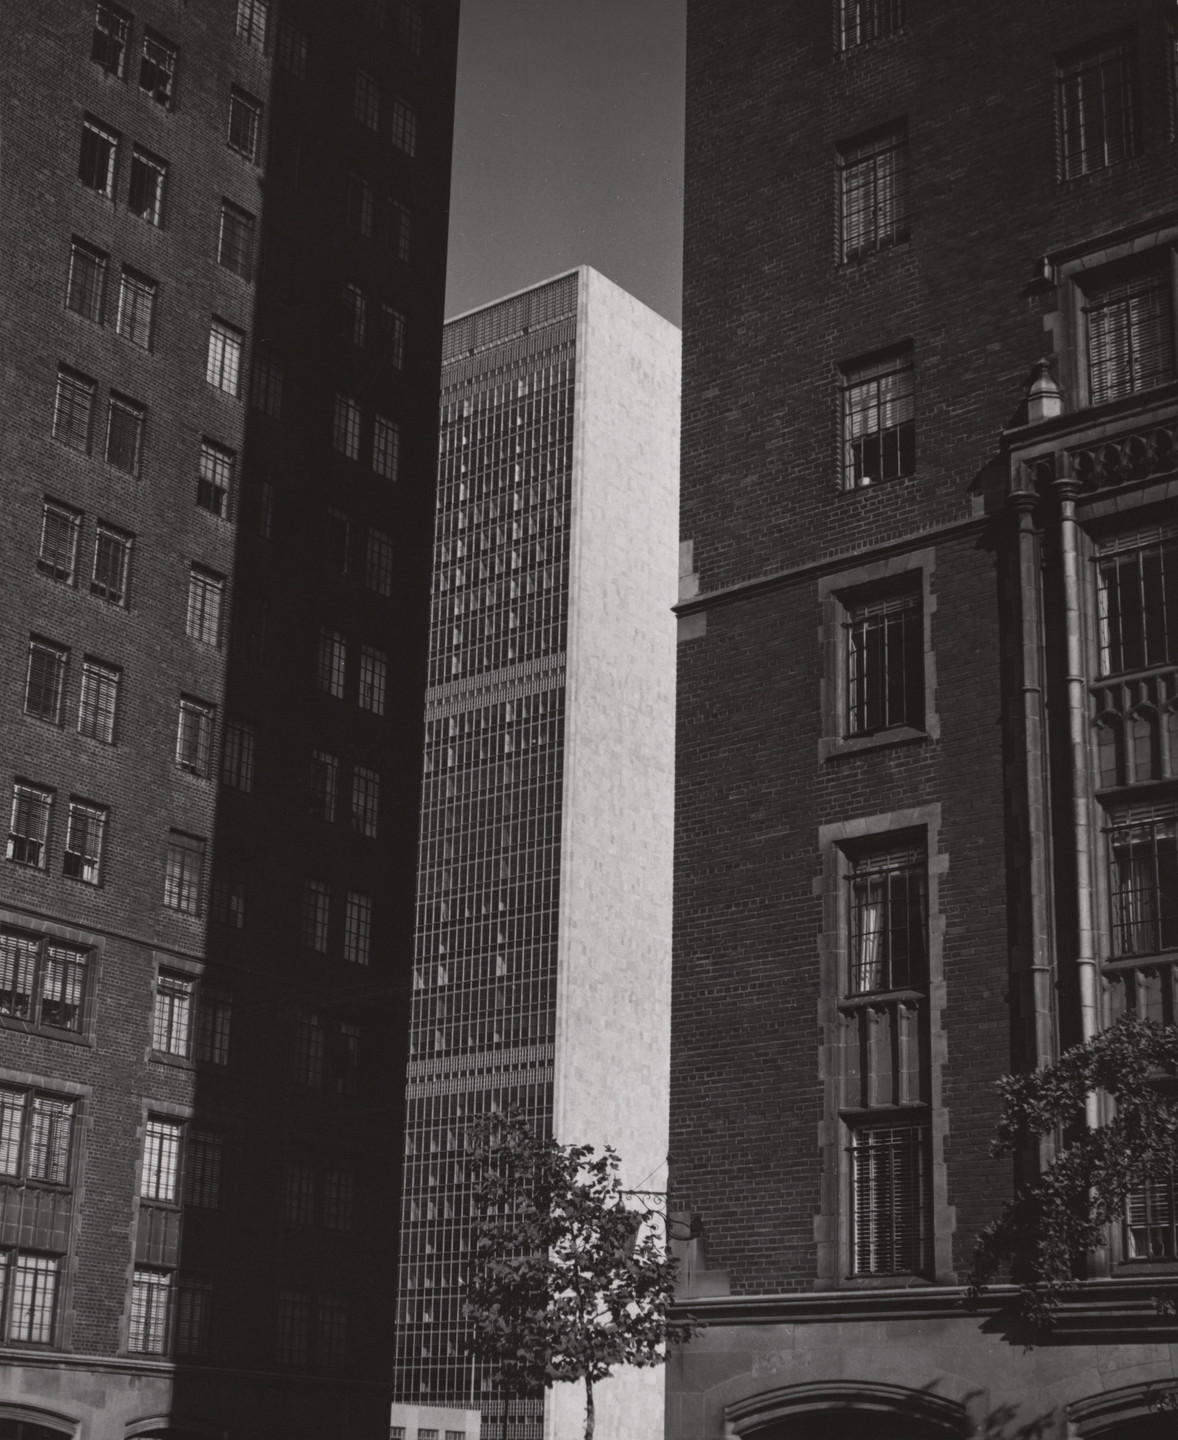 Charles Sheeler. Skyscrapers, New York. 1950